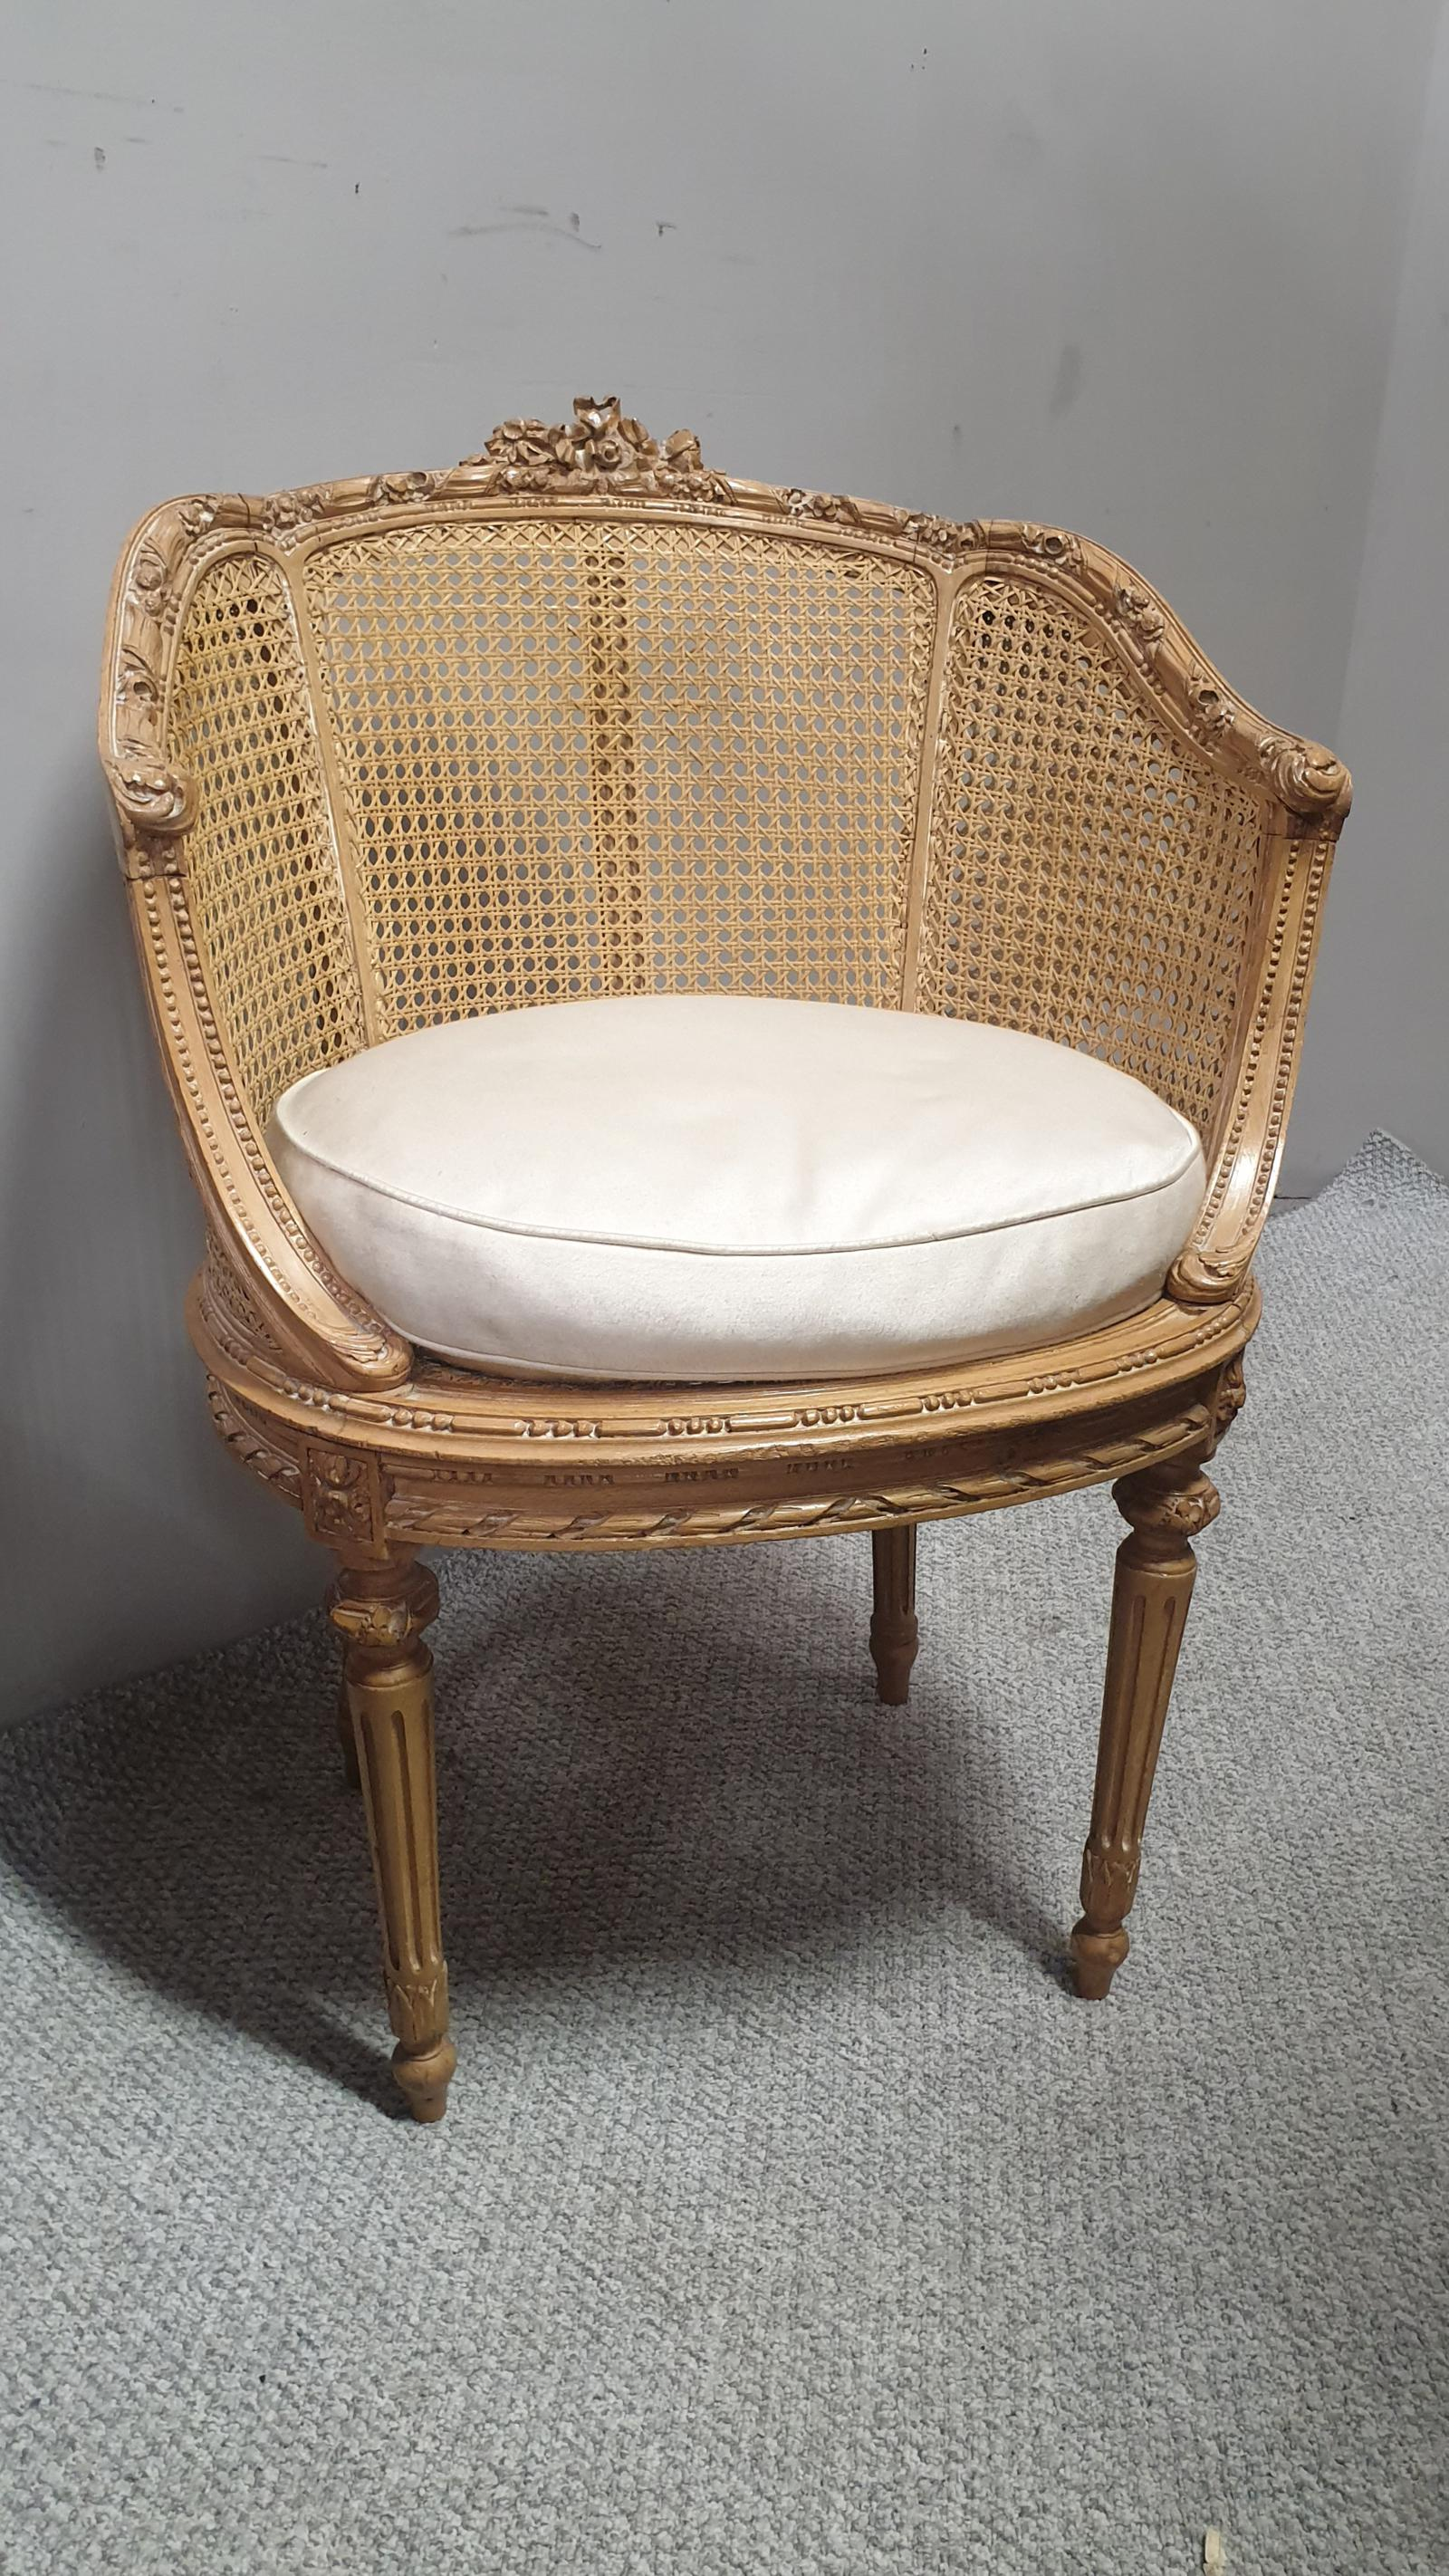 Very Nice French Bergere Tub Chair (1 of 1)